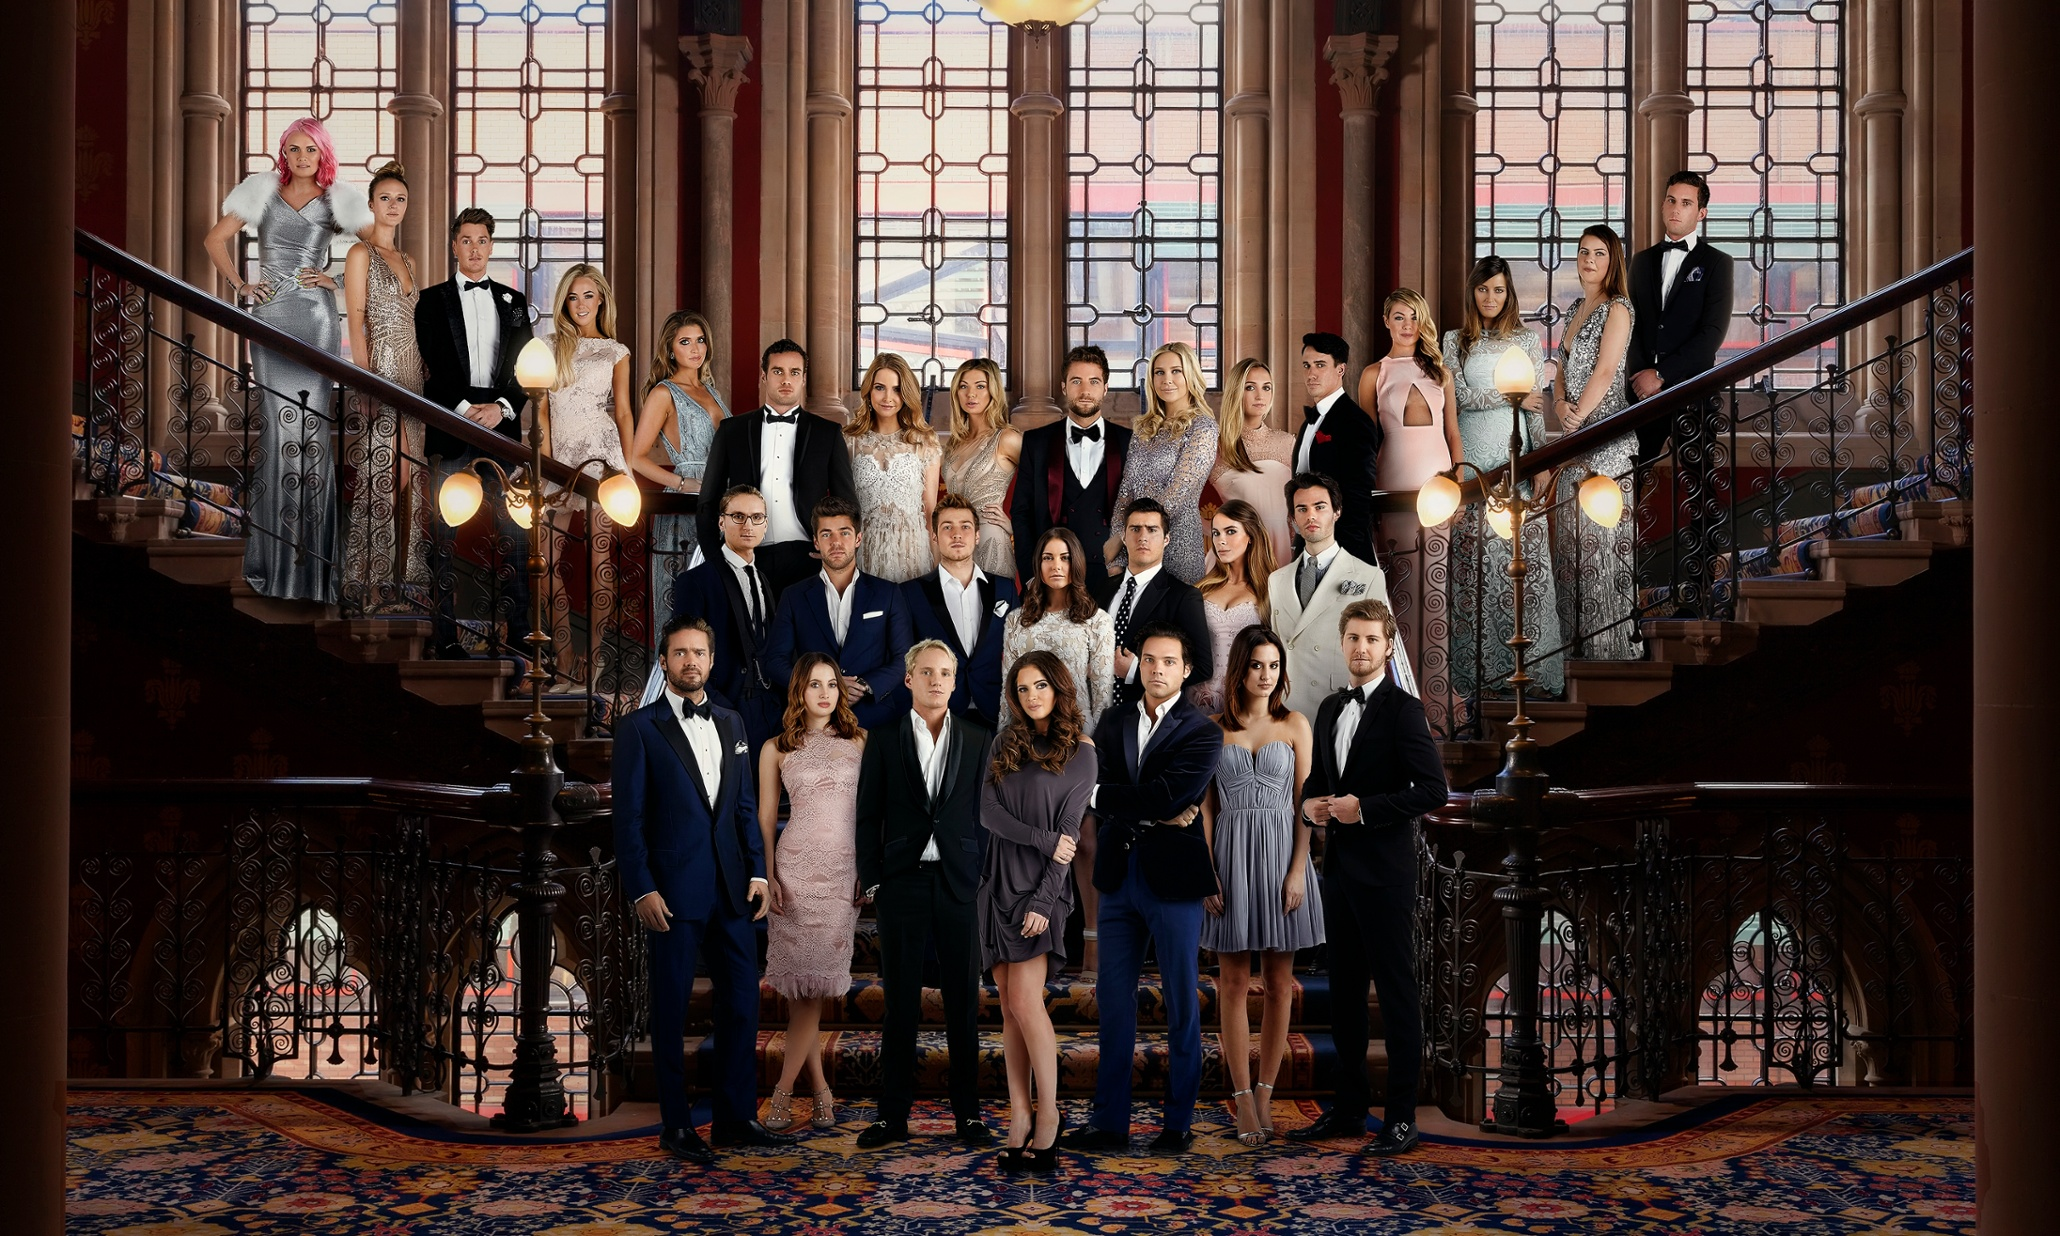 meet made in chelsea cast 2015 vacation